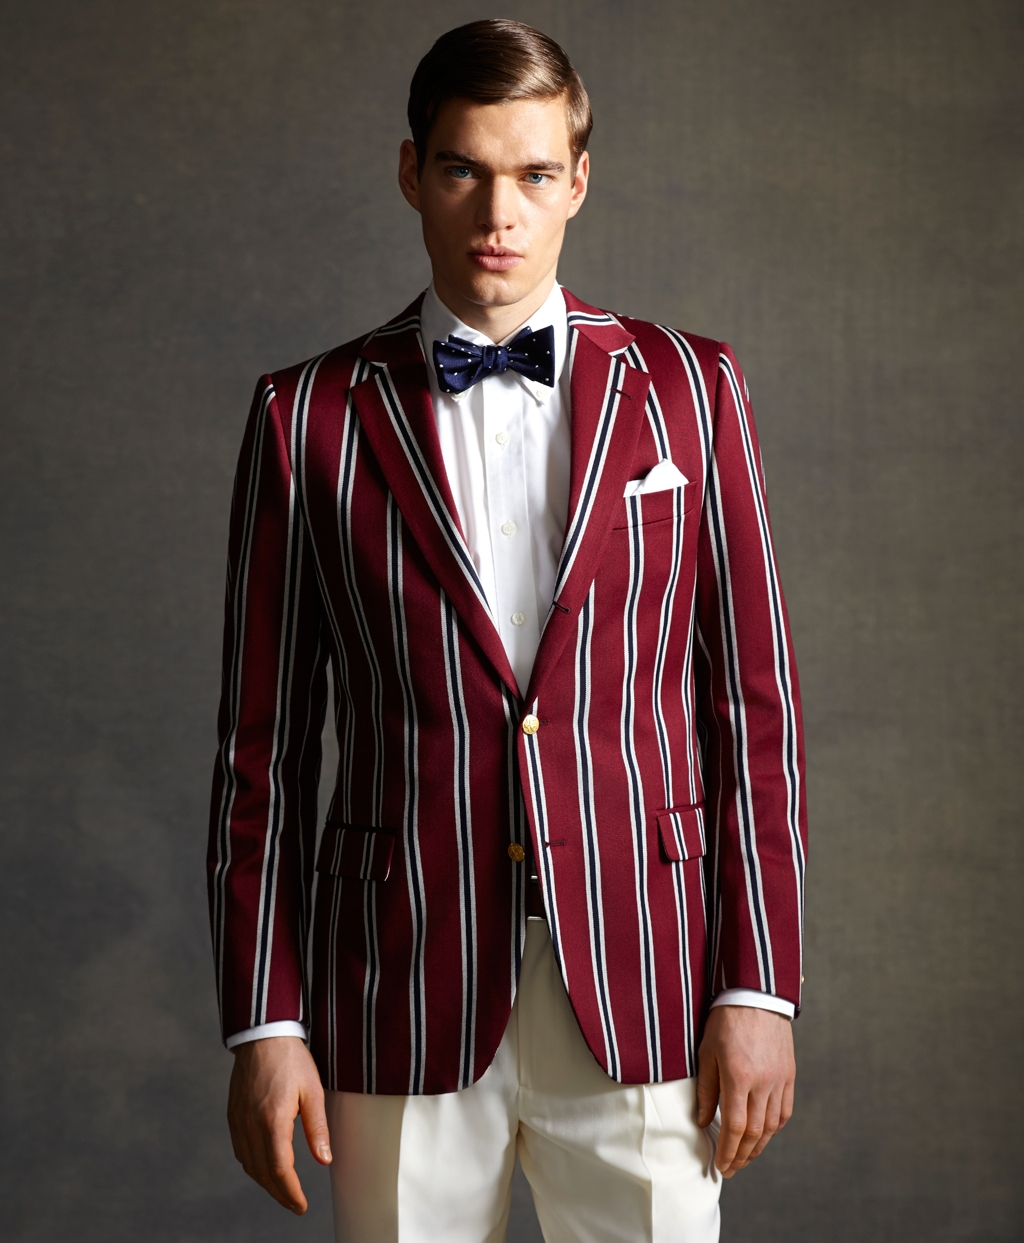 The Great Gatsby: Brooks Brothers The Great Gatsby Collection